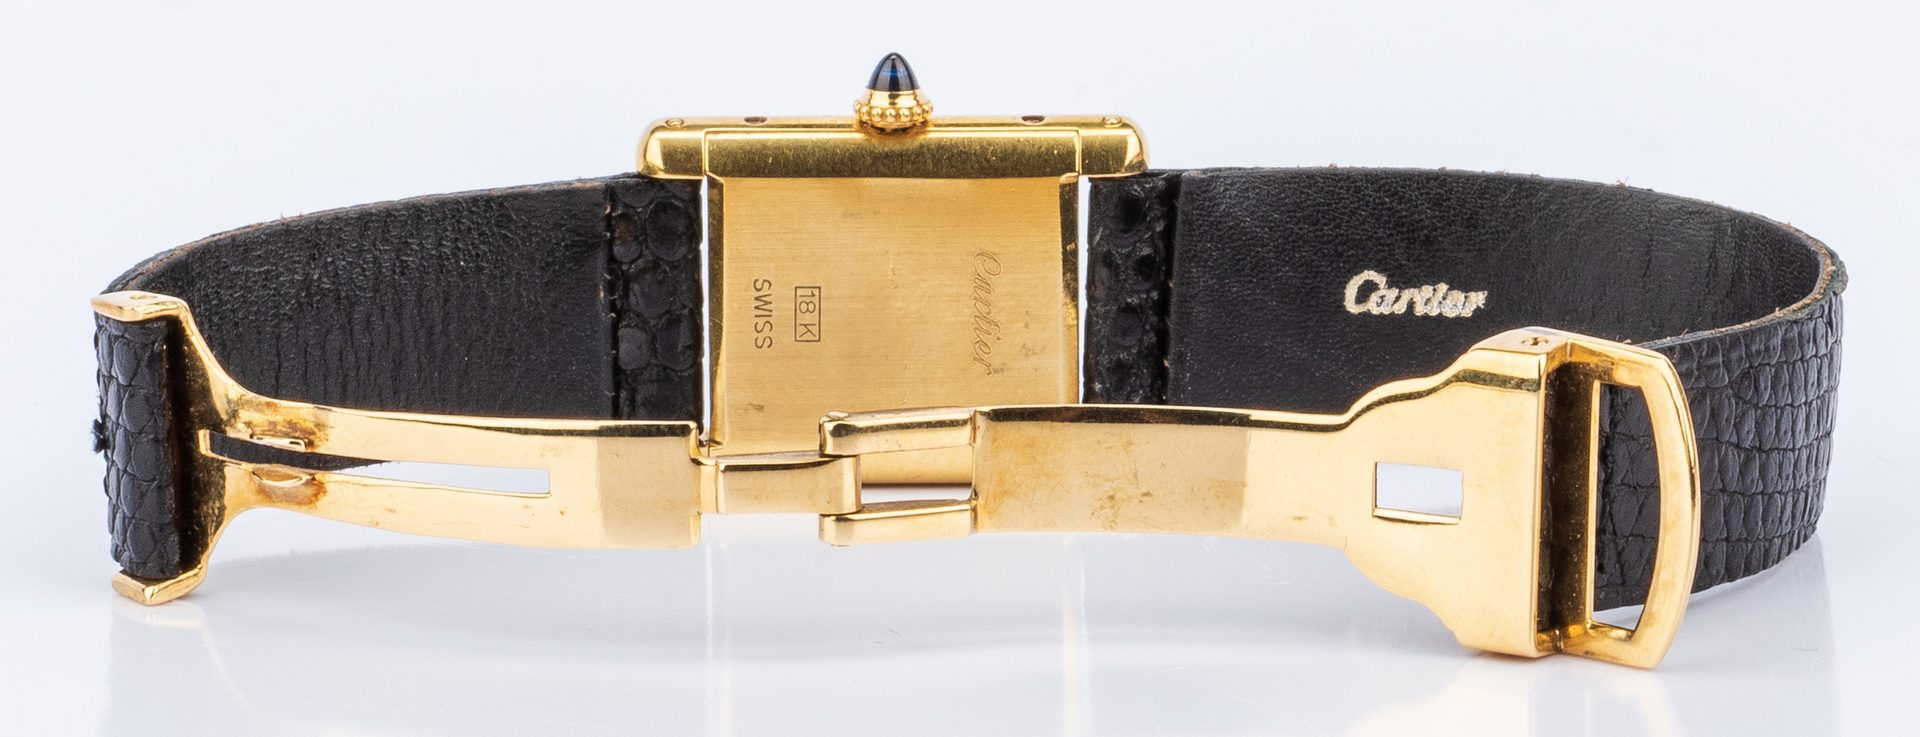 Lot 200: Lady's 18K Cartier Tank Watch